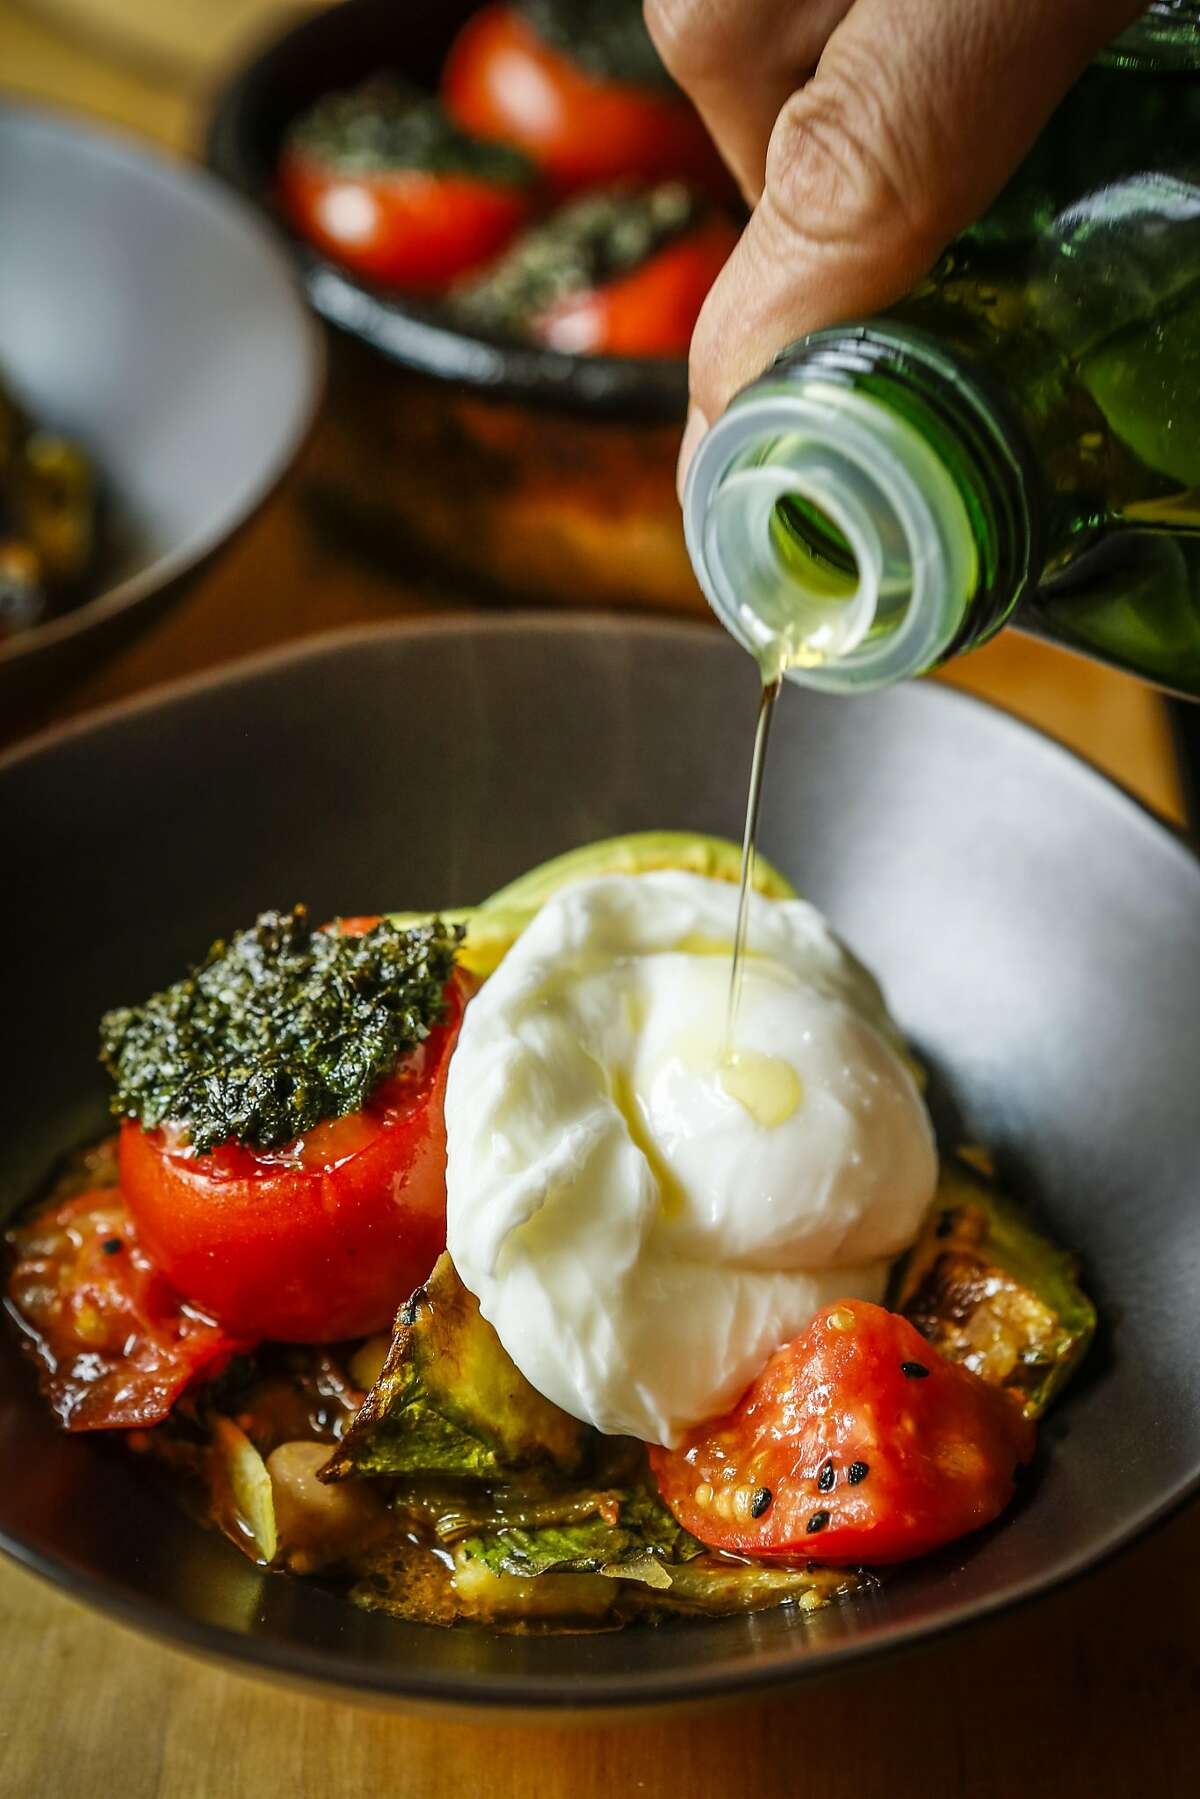 The Mediterranean diet features olive oil as the primary source of fat.